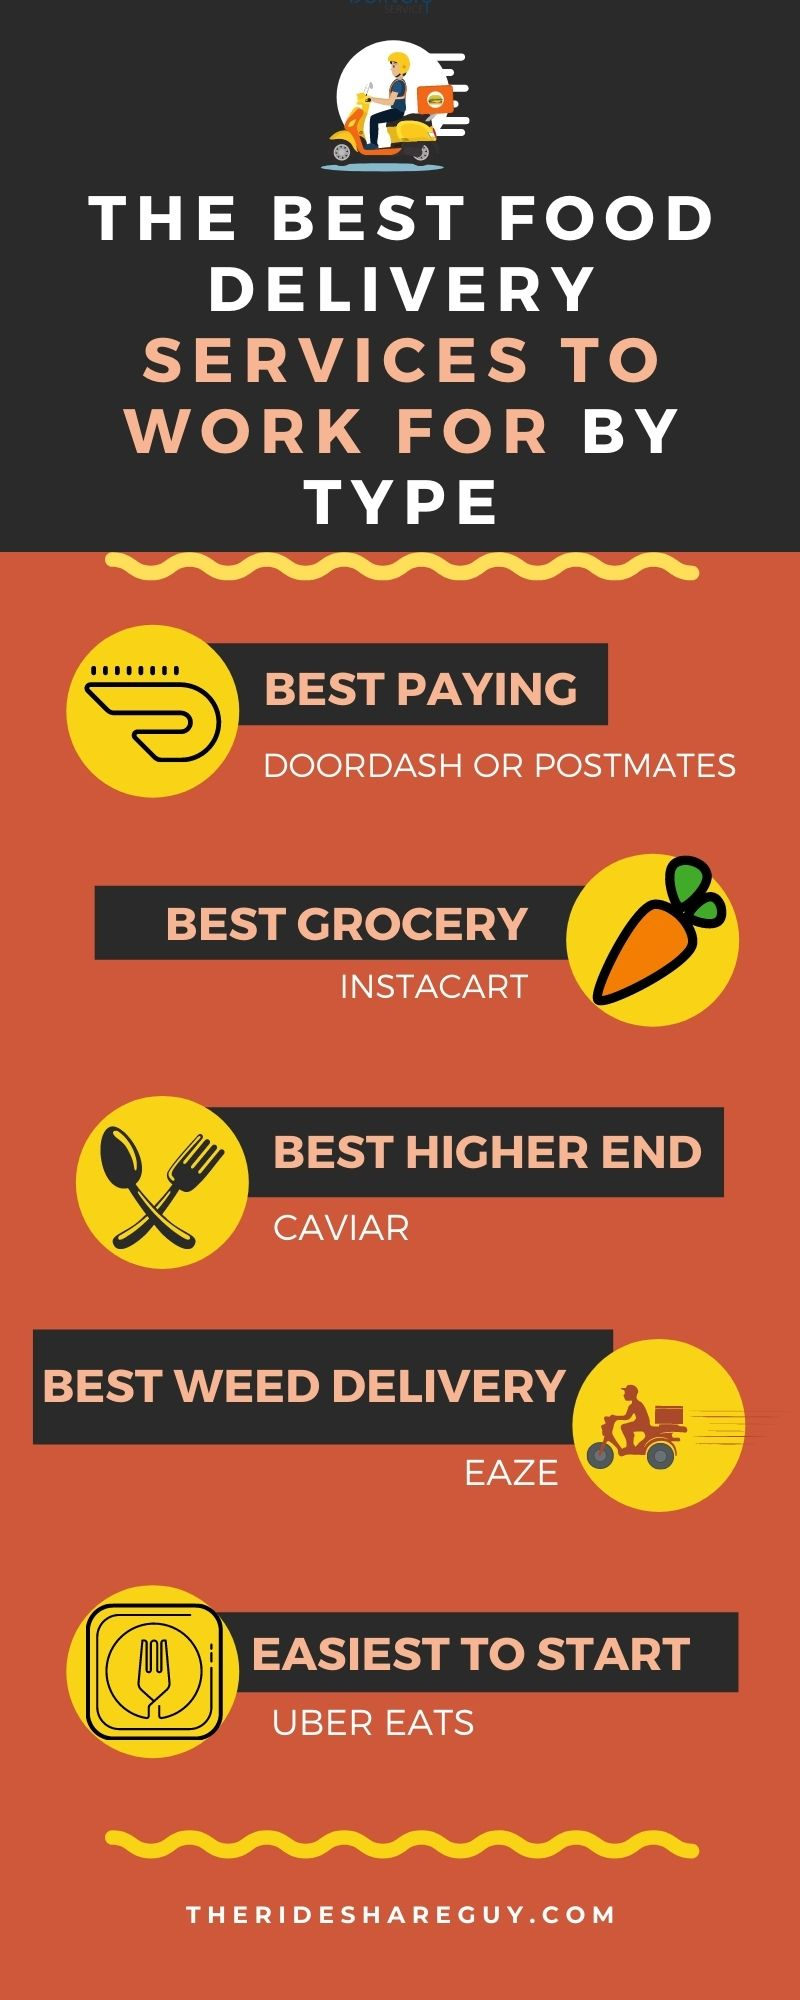 best food delivery services to work for by type